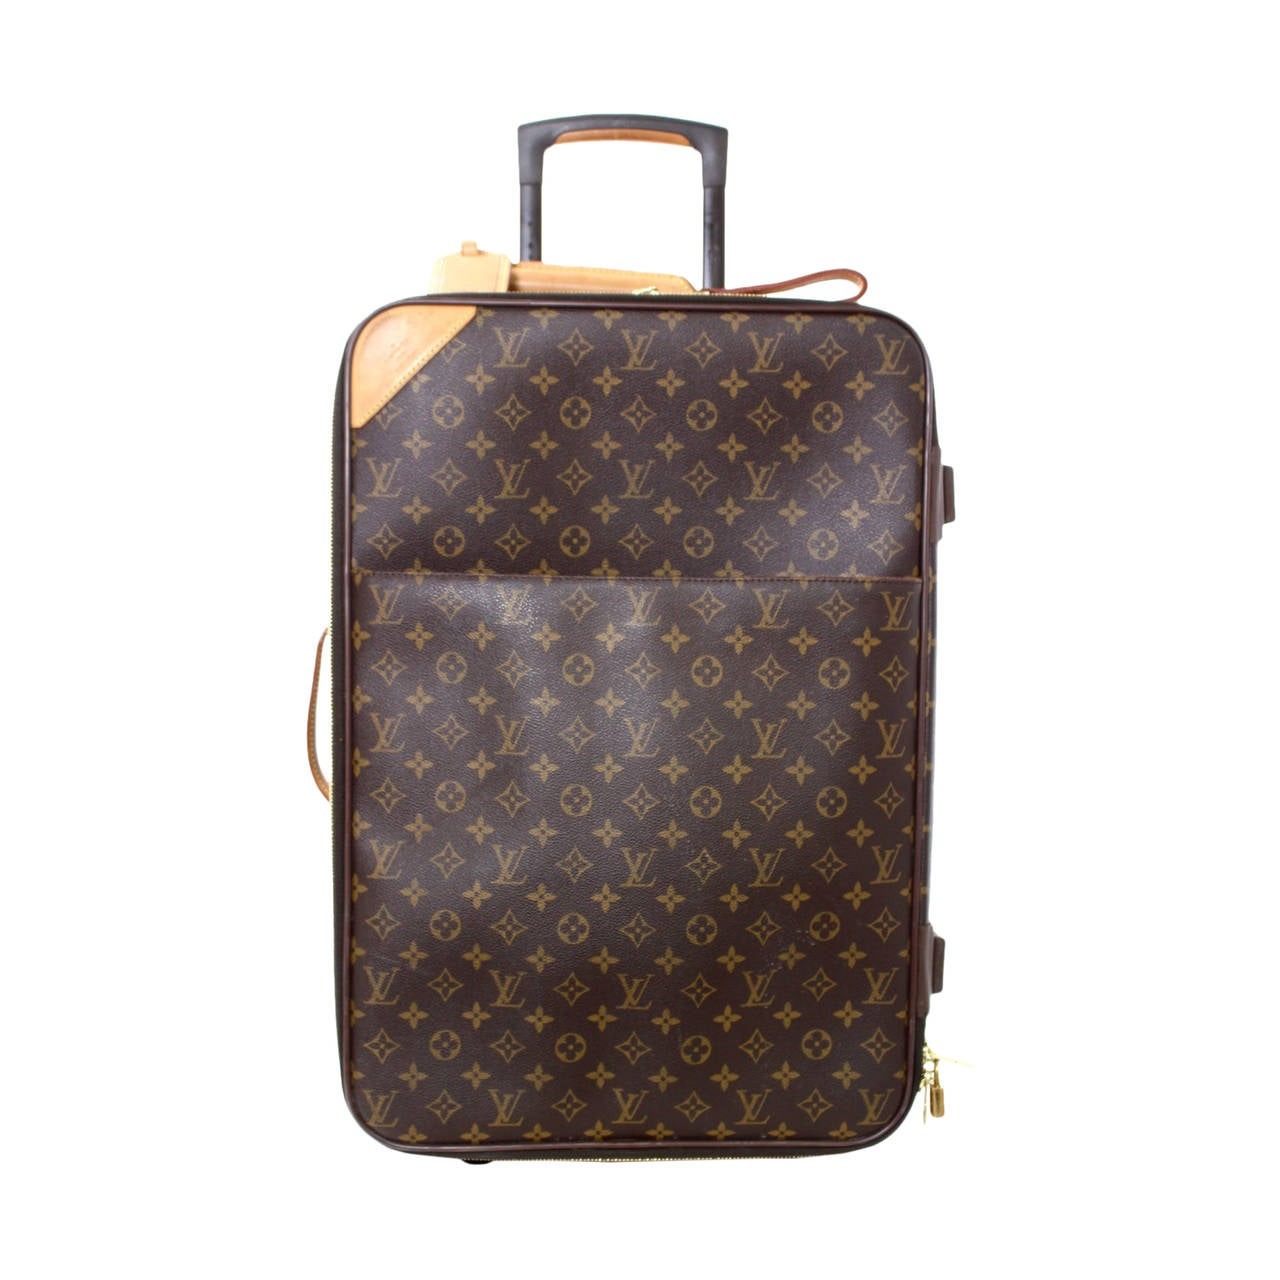 louis vuitton monogram canvas travel rolling trolley luggage 55 at 1stdibs. Black Bedroom Furniture Sets. Home Design Ideas